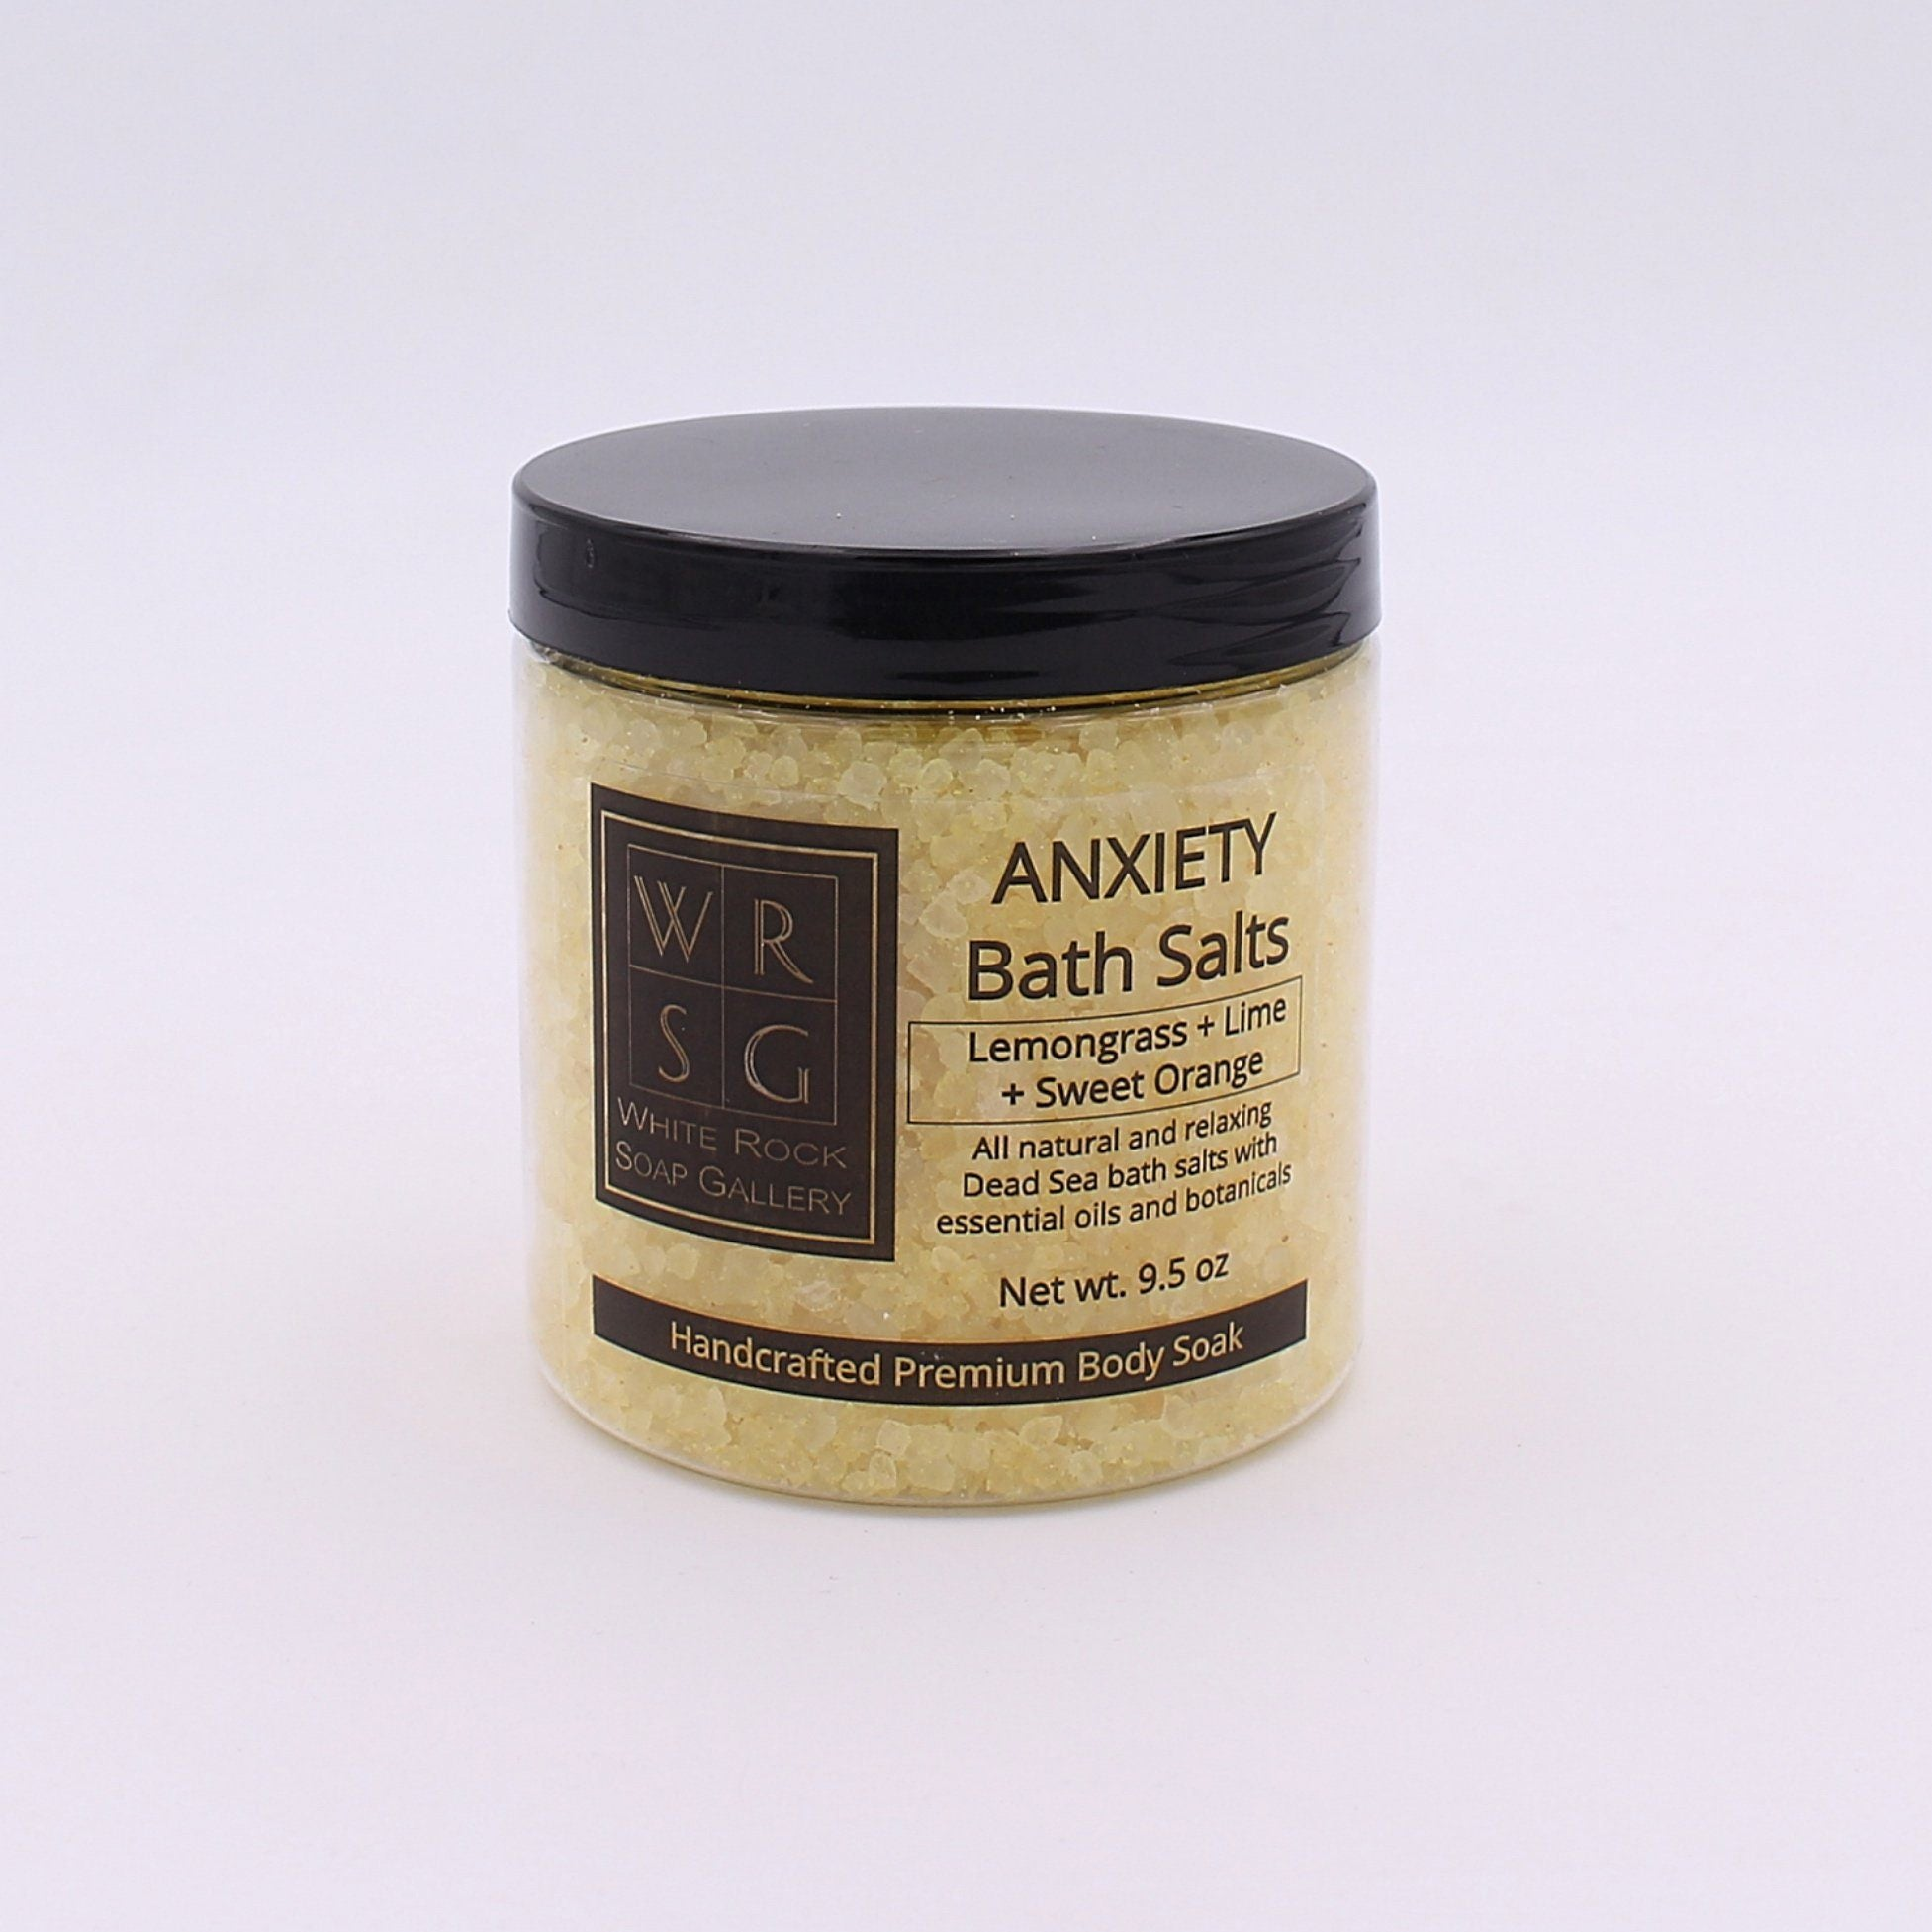 Dead Sea Bath Salts